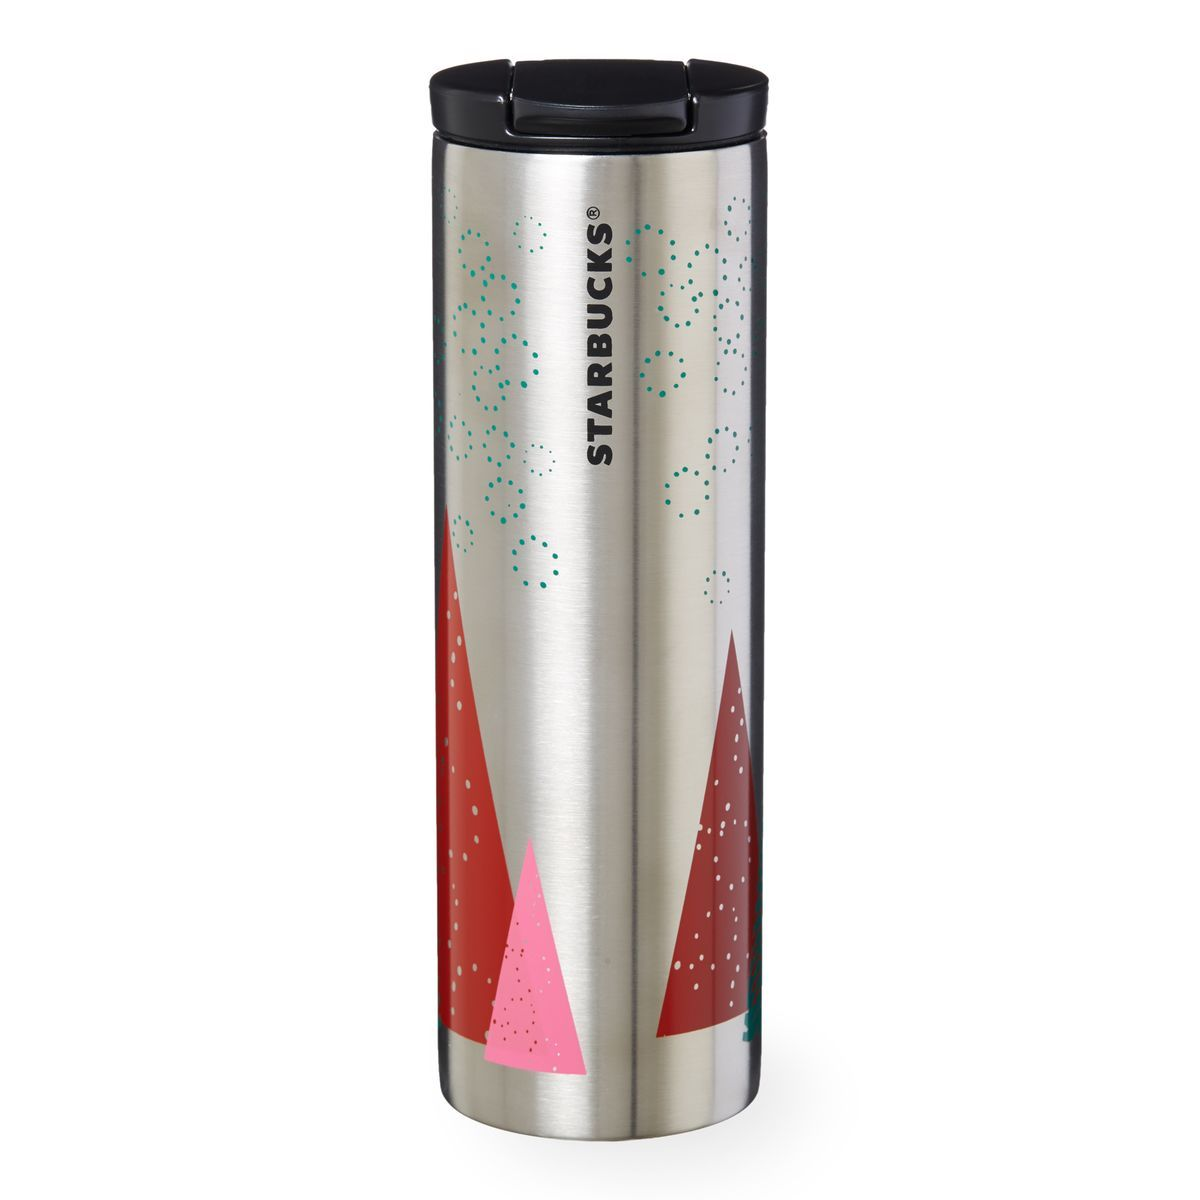 Stainless steel ornaments - A Brushed Stainless Steel Coffee Tumbler Screen Printed With Geometric Trees In Red Pink And